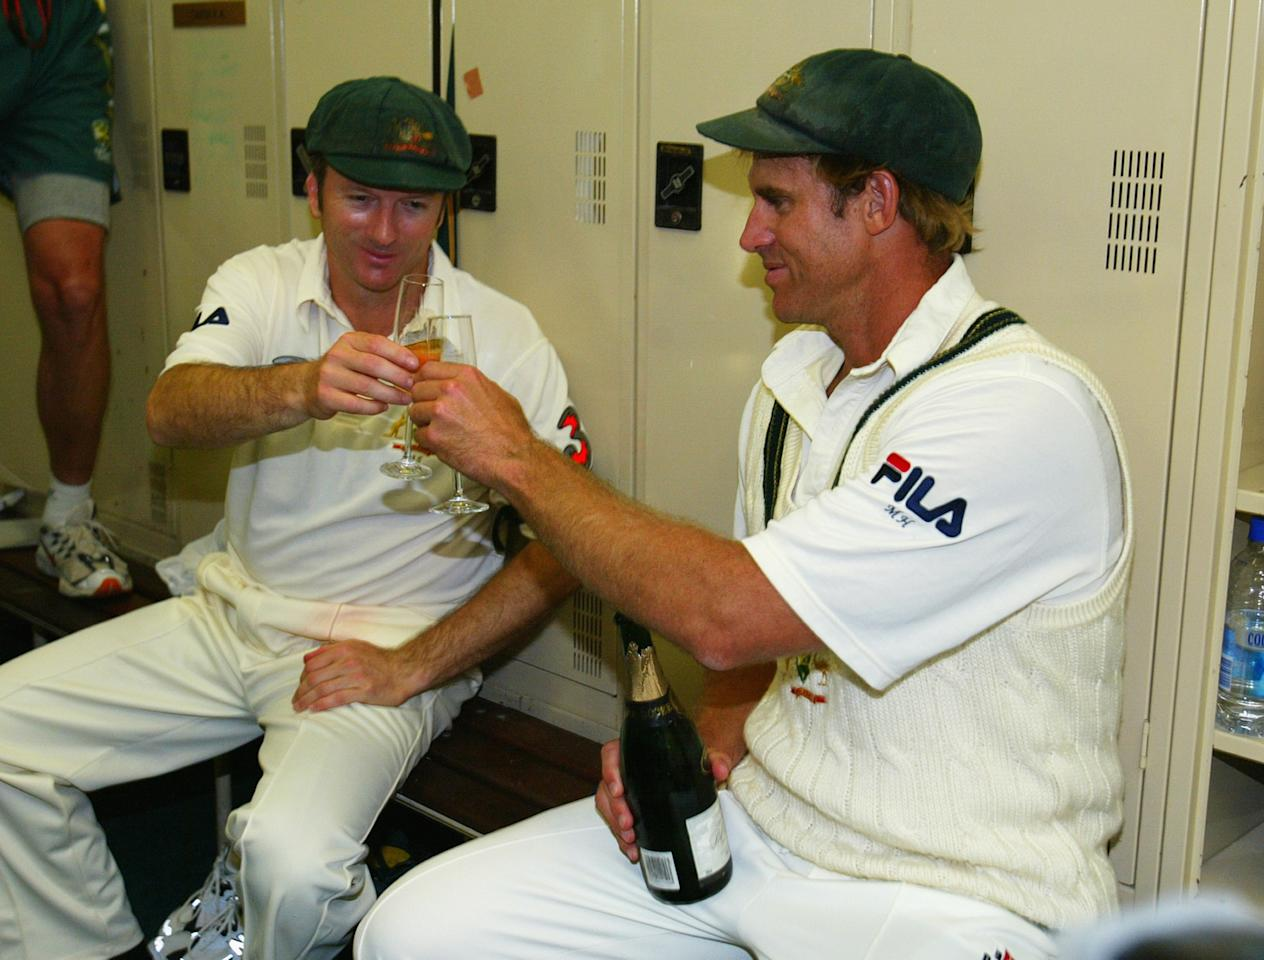 PERTH, AUSTRALIA - OCTOBER 10:  Matthew Hayden of Australia shares a glass of champagne with his captain Steve Waugh in the rooms after scoring 380 to break Brian Lara of The West Indies world record of 375 during day two of the First Test between Australia and Zimbabwe played at the WACA Ground on October 10, 2003 in Perth, Australia. (Photo by Hamish Blair/Getty Images)